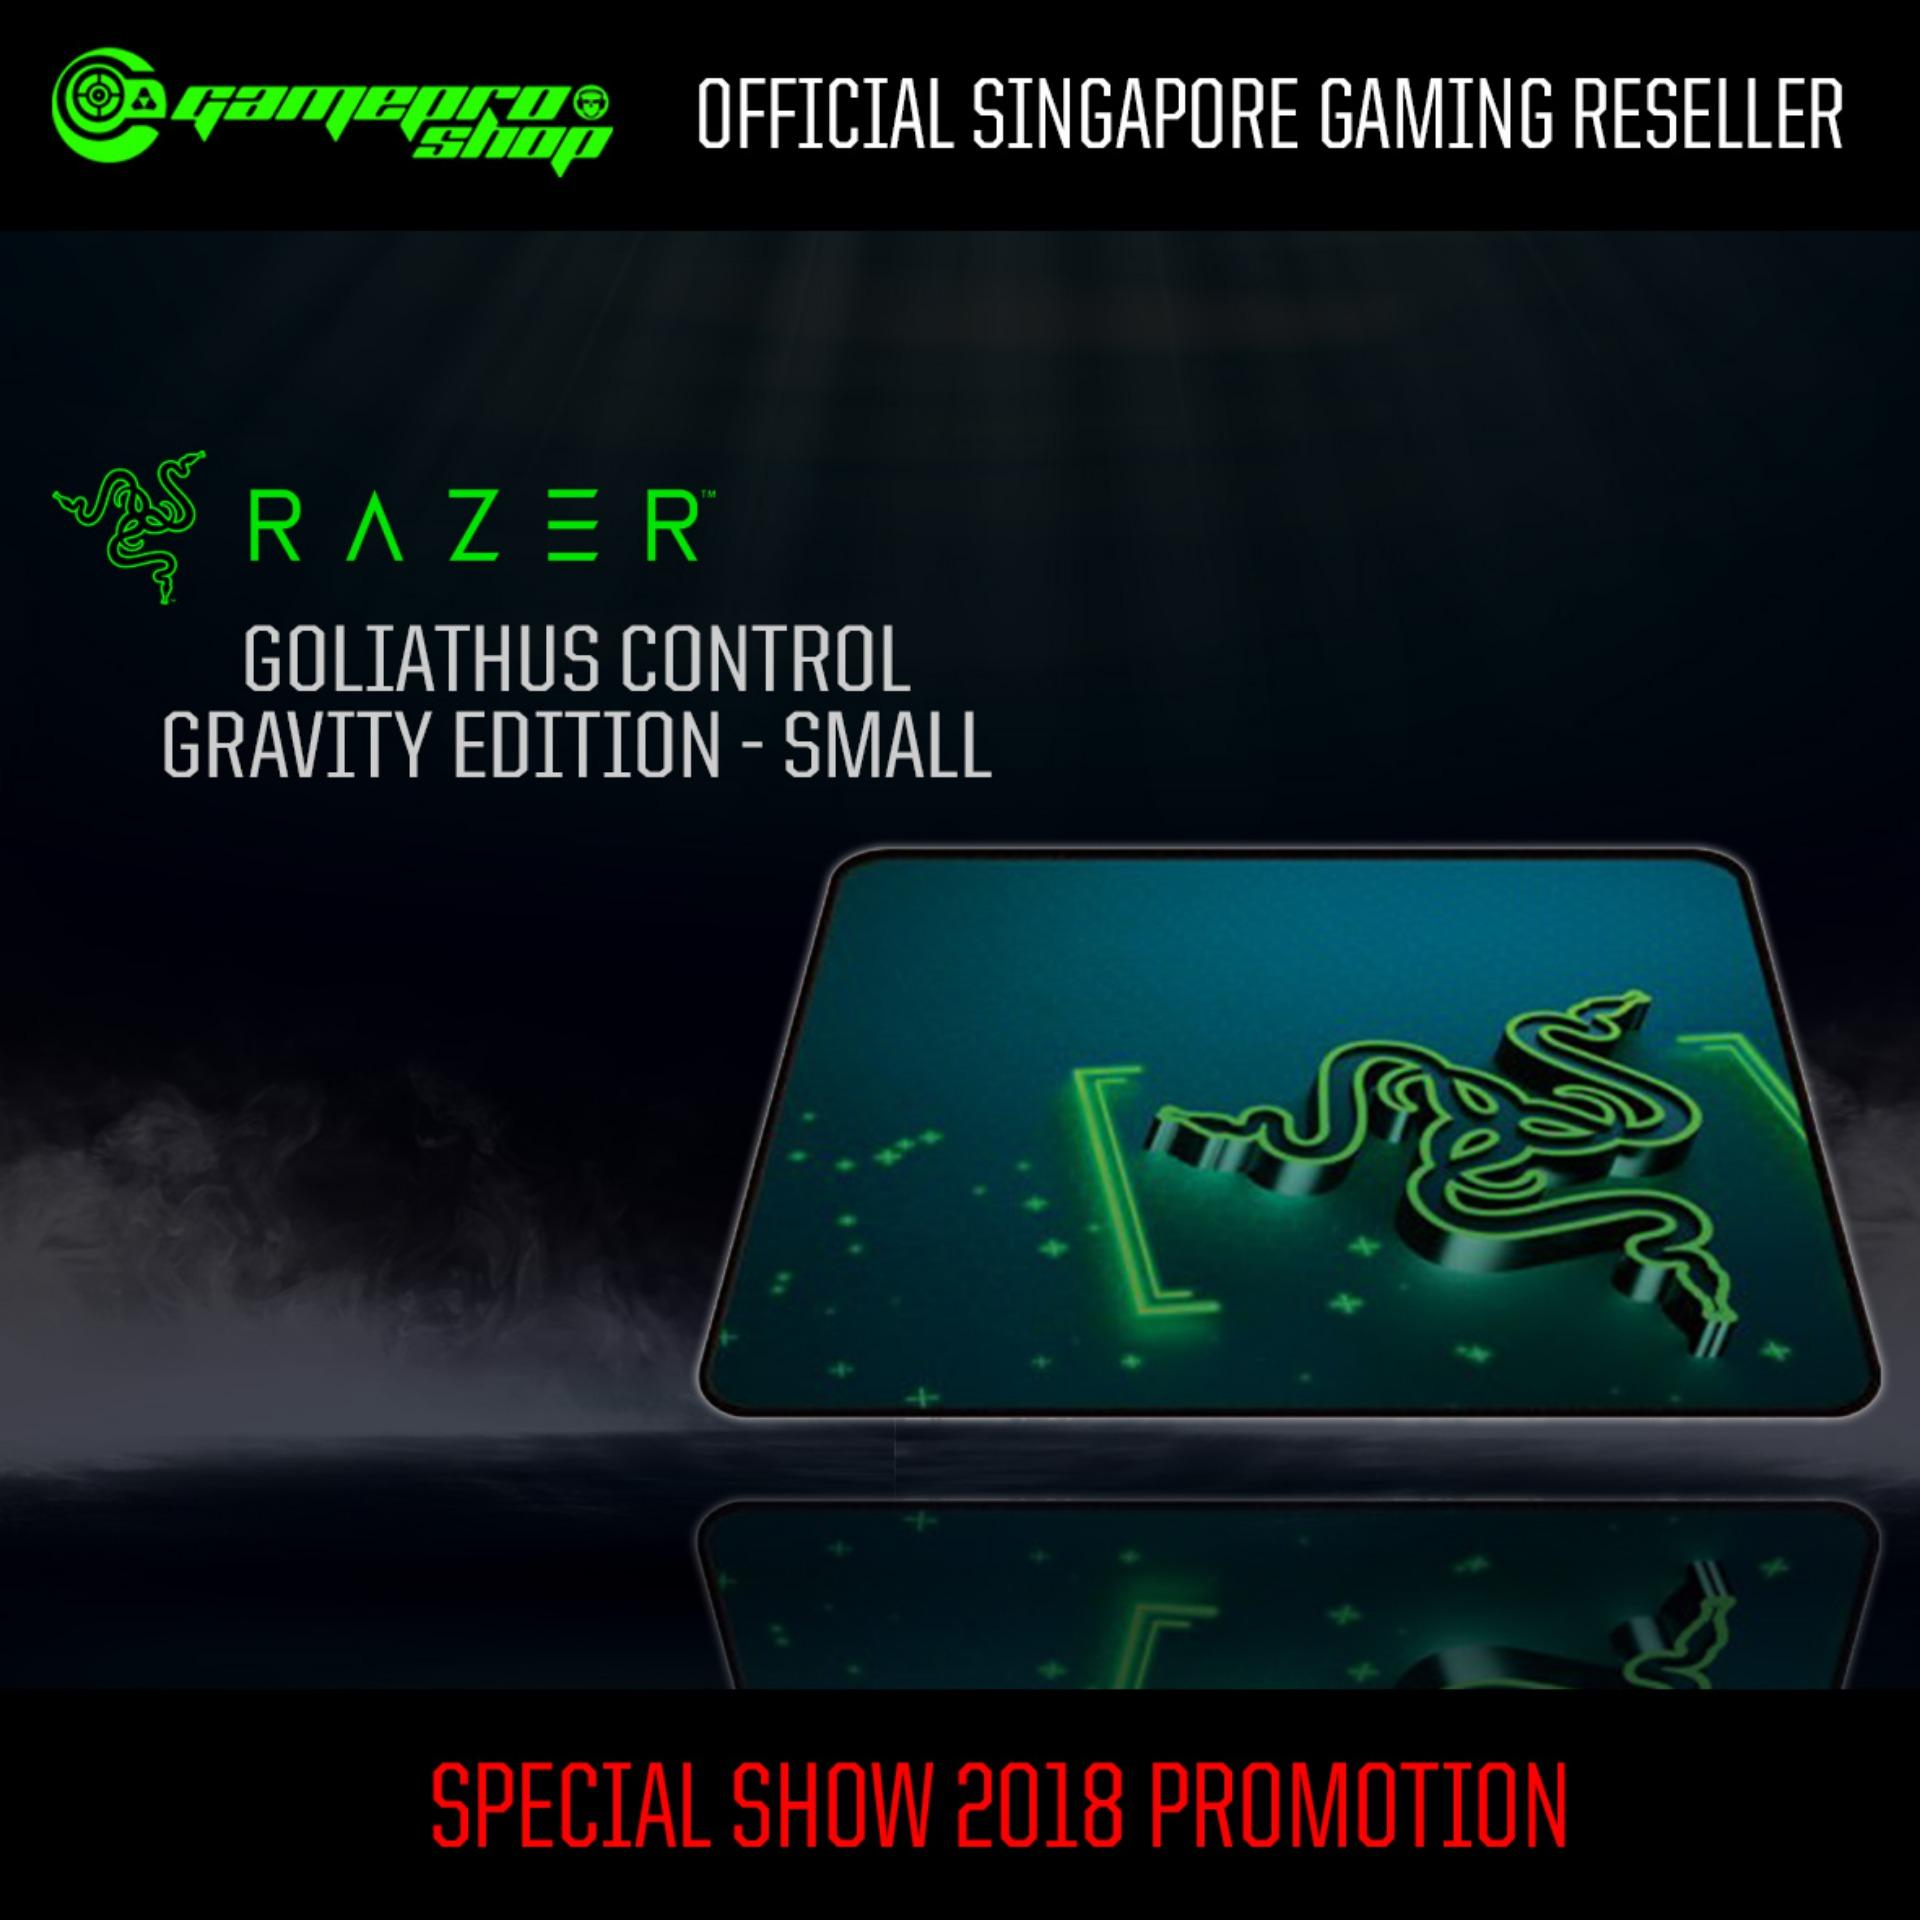 Who Sells The Cheapest Razer Goliathus Control Gravity Edition Small Gss Promo Online